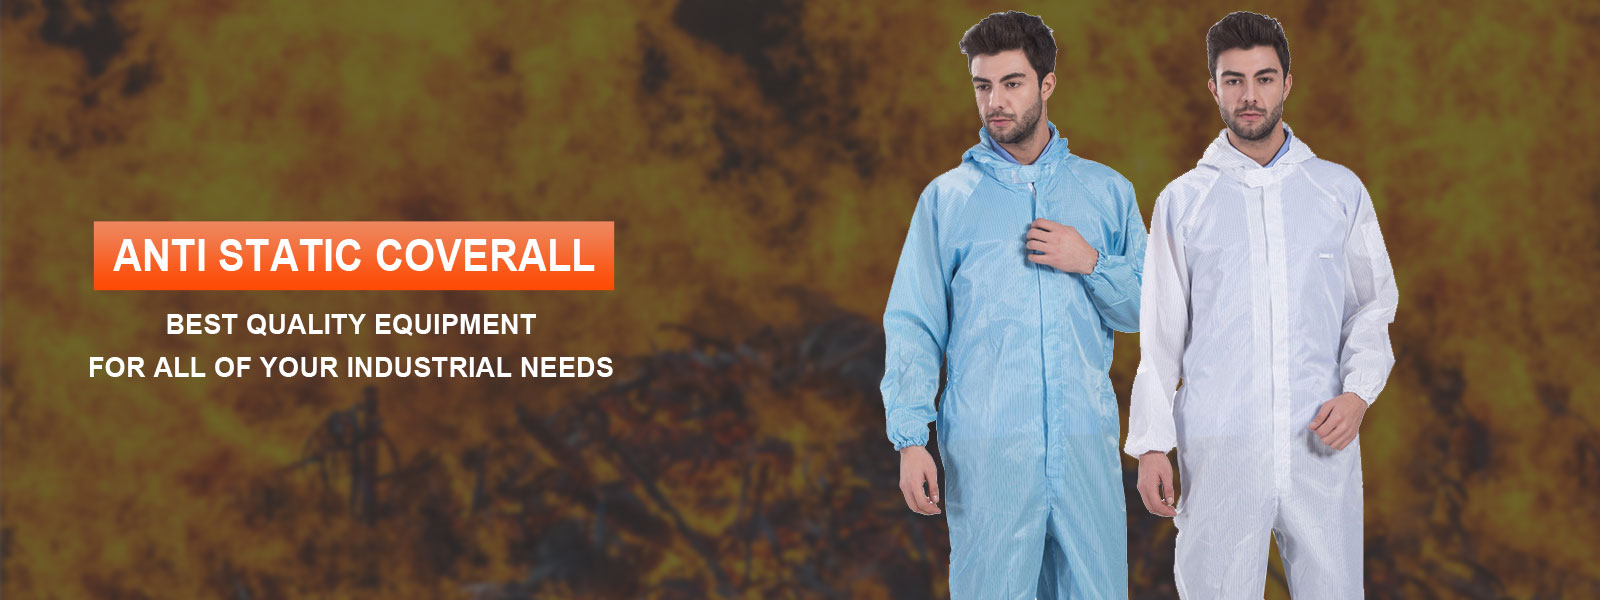 Anti Static Coverall Manufacturers in Haryana